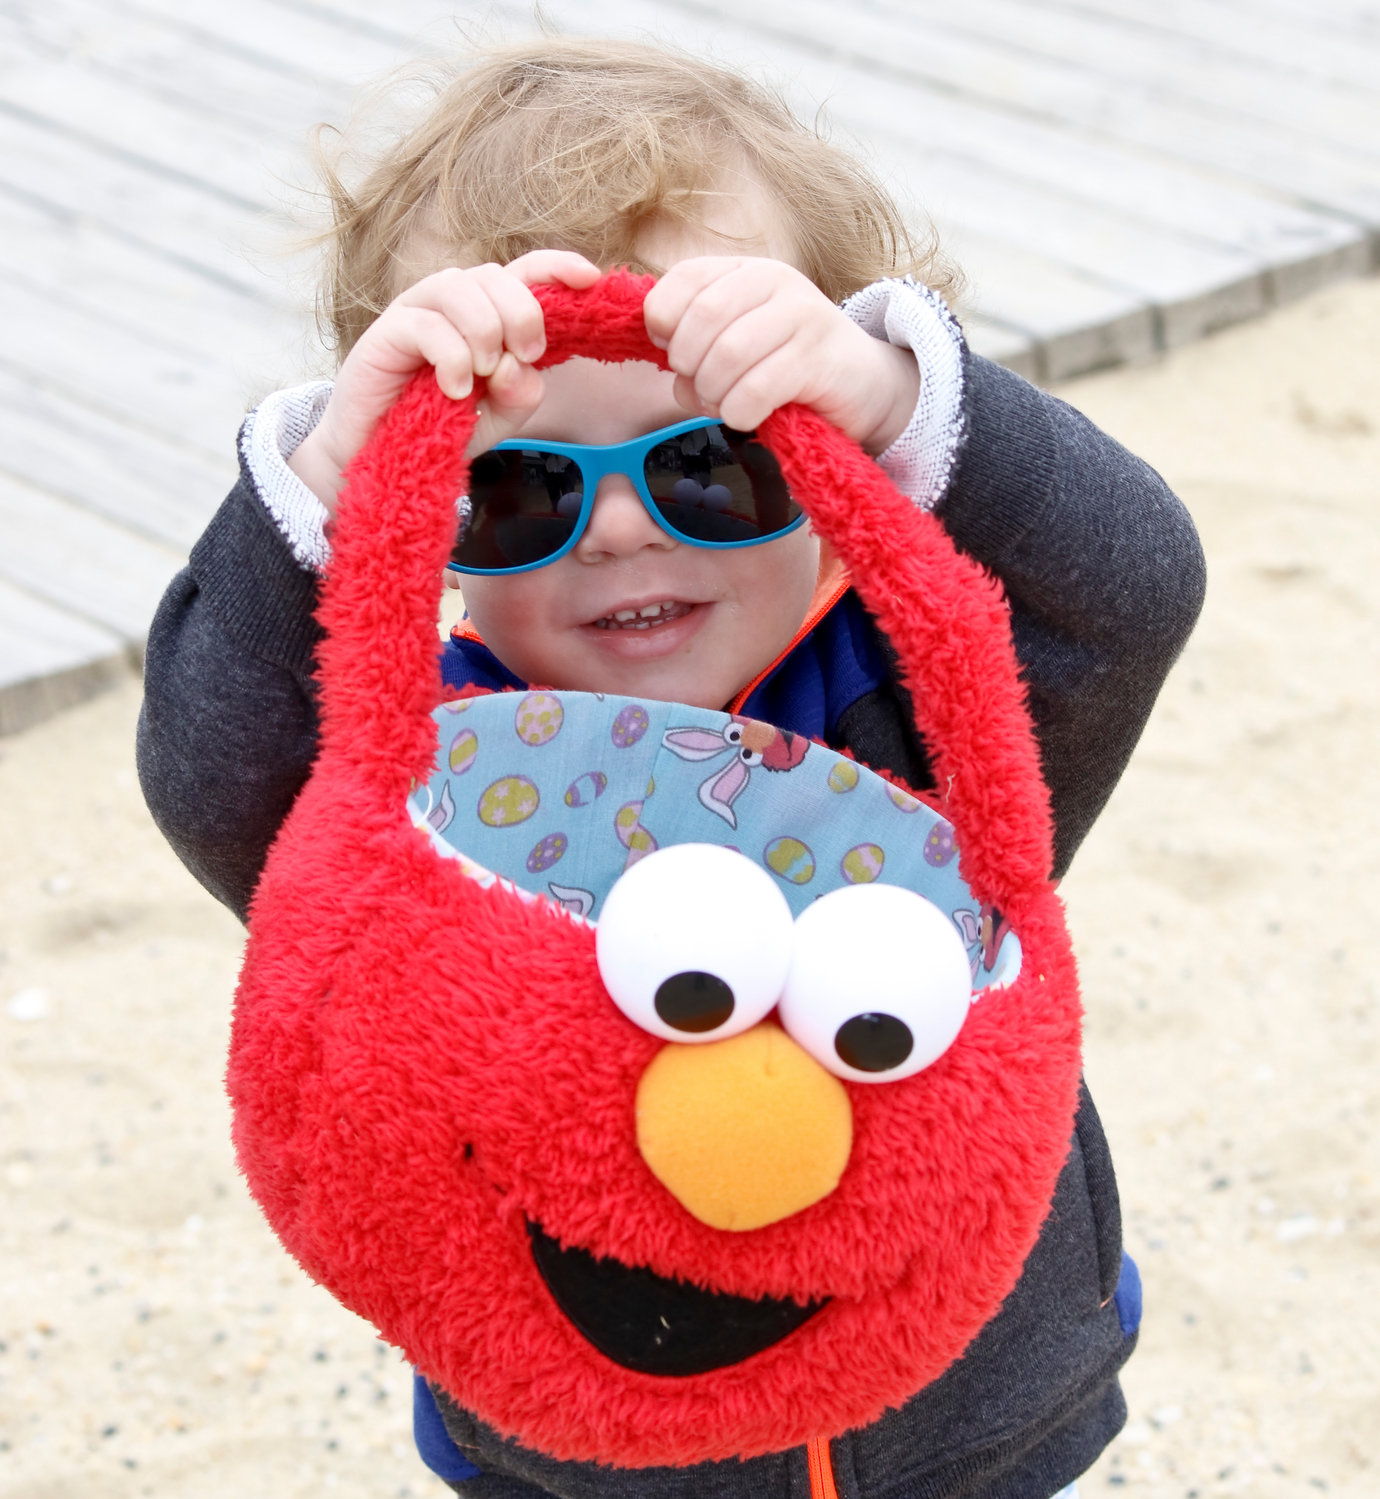 Oliver Roth, 2, collected eggs in an Elmo basket at his first egg hunt.